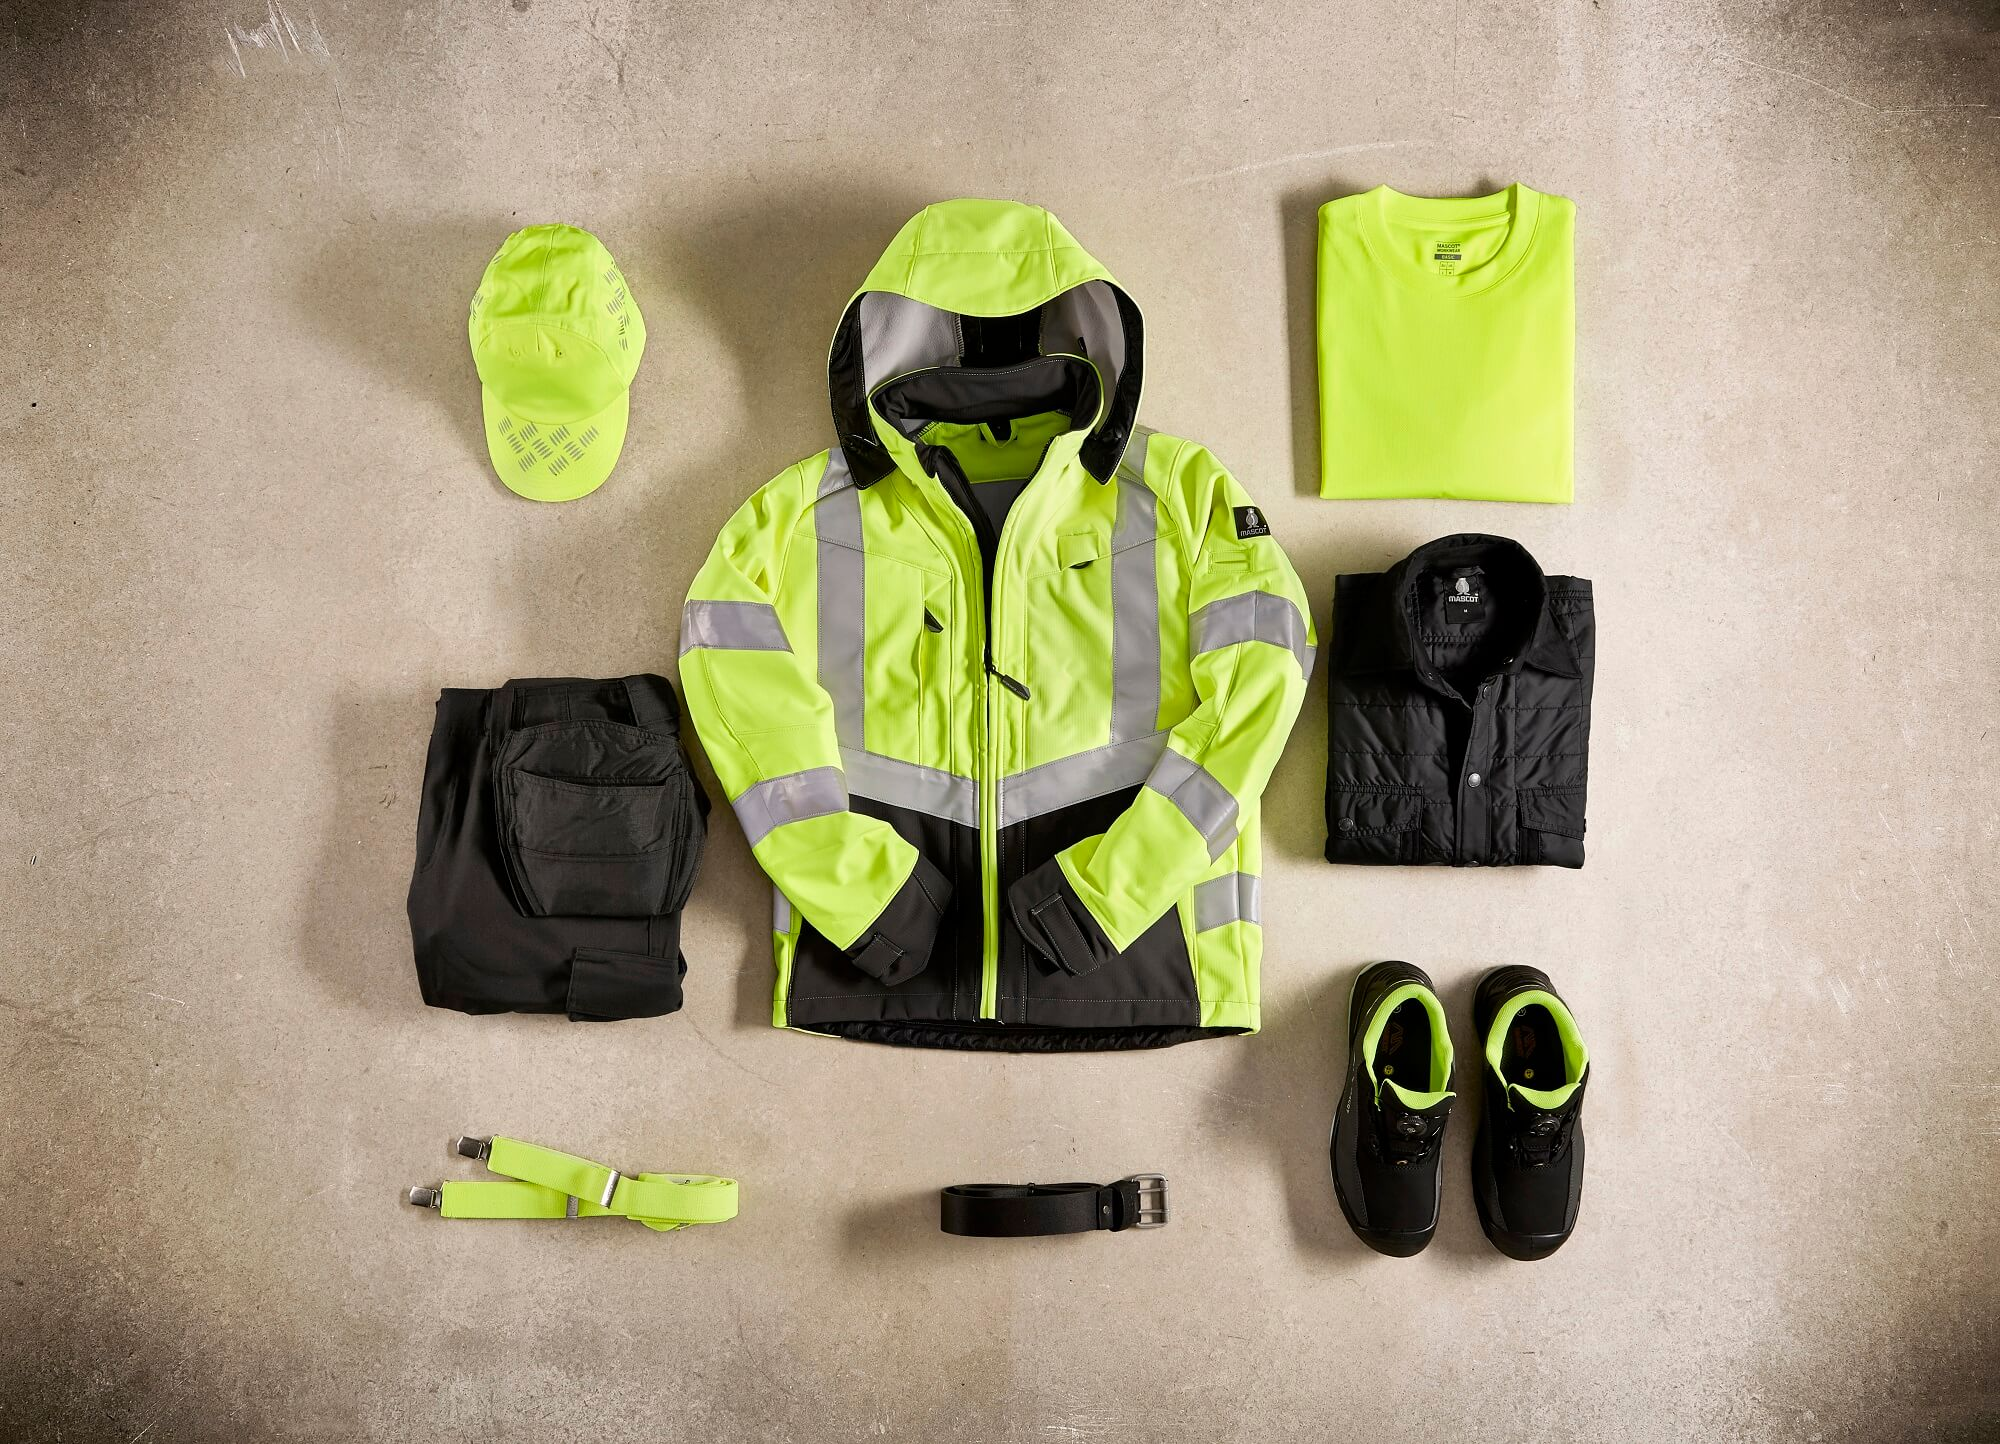 Fluorescent yellow - Jacket, T-shirt, Pants & Safety footwear - Collage